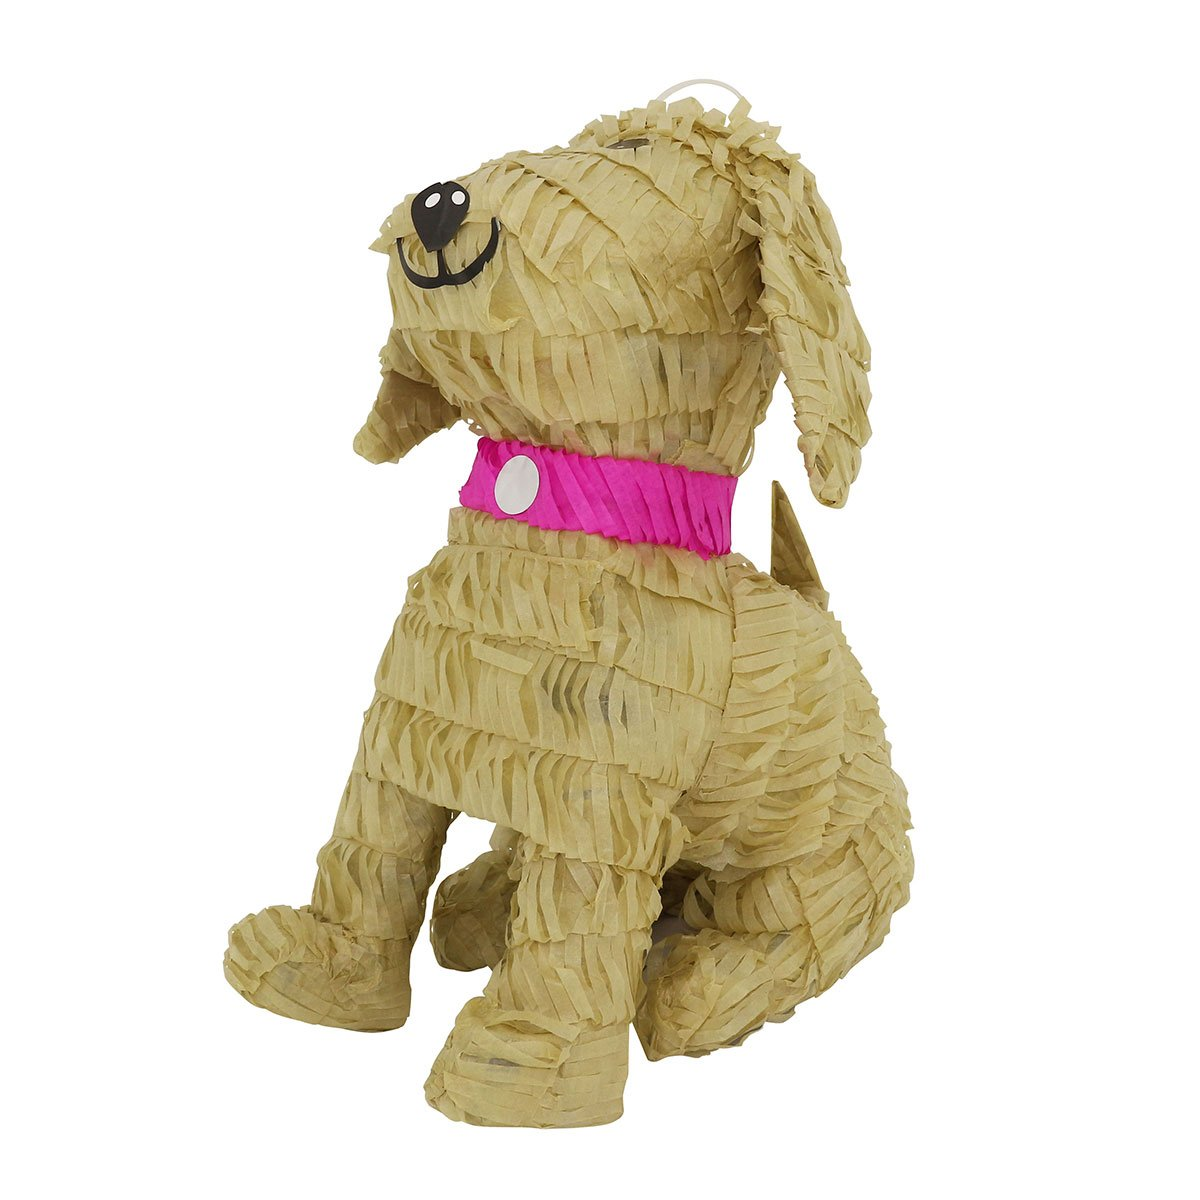 LYTIO – Golden Retriever Dog with with Pink Collar Pinata (Piñata) Ideal for Animal Parties, Center Piece, Photo Prop and Décor